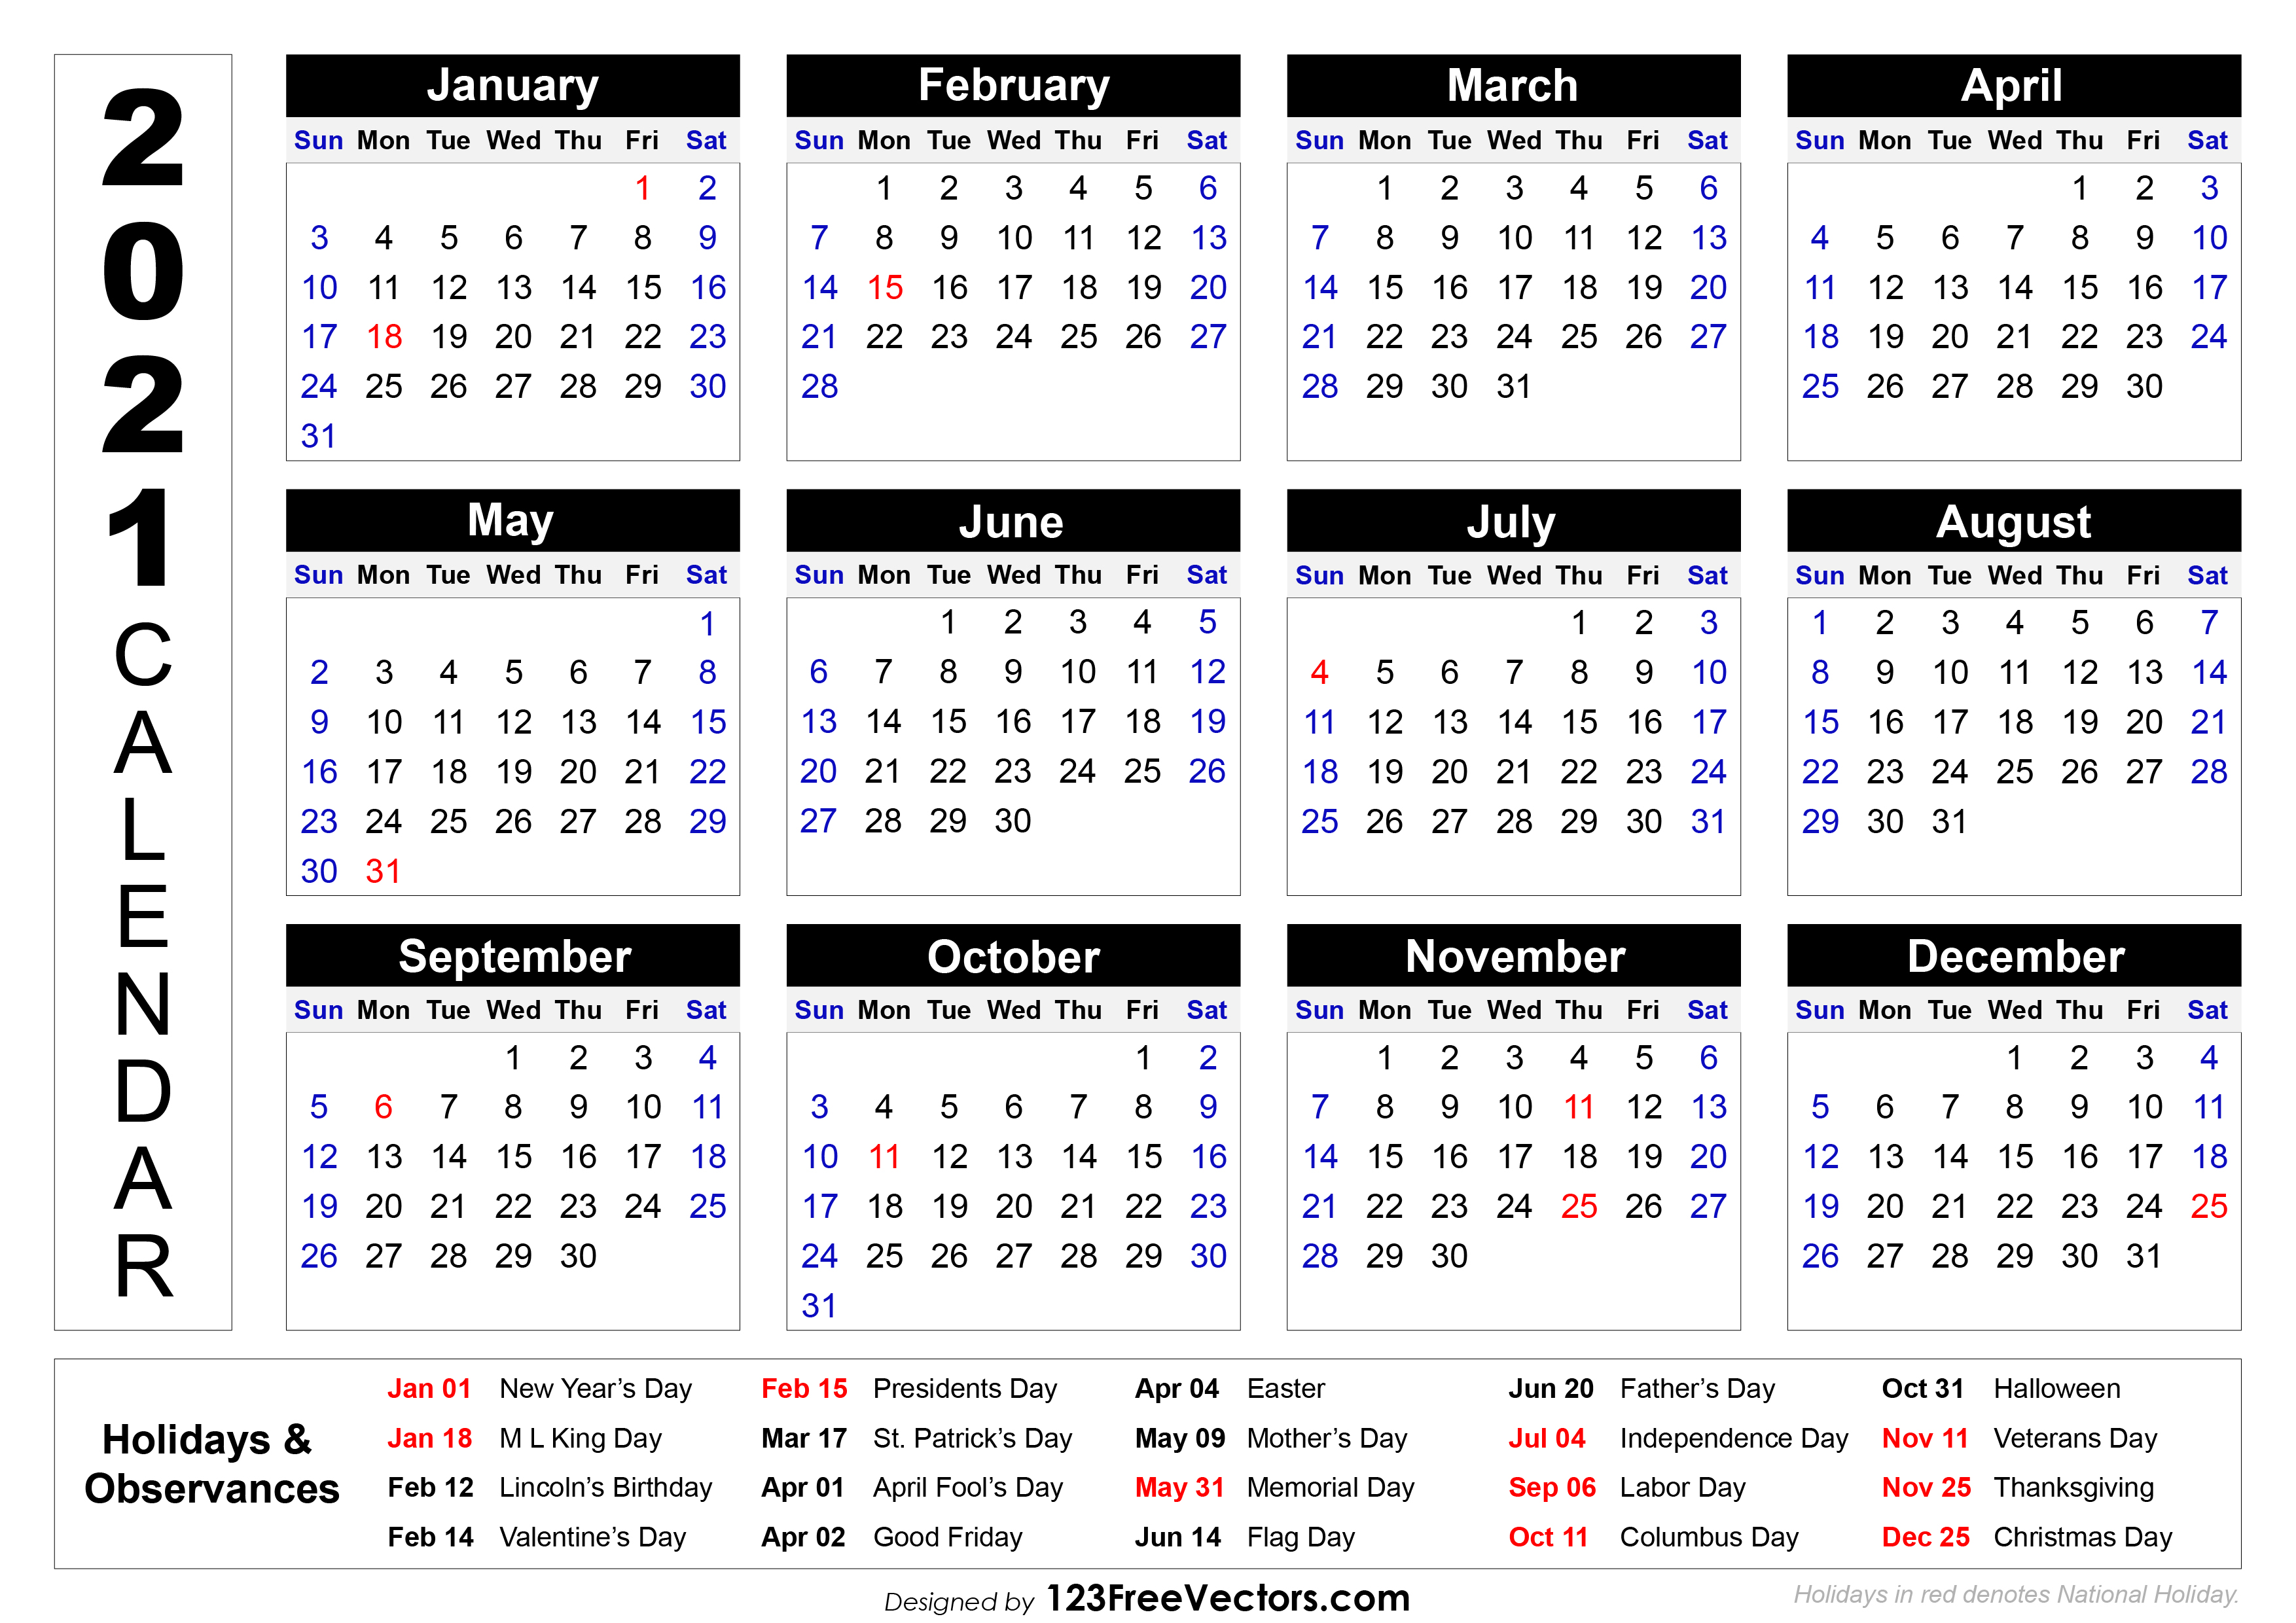 Our editors independently research, test, and recommend the best products; Free 2021 Printable Calendar with Holidays